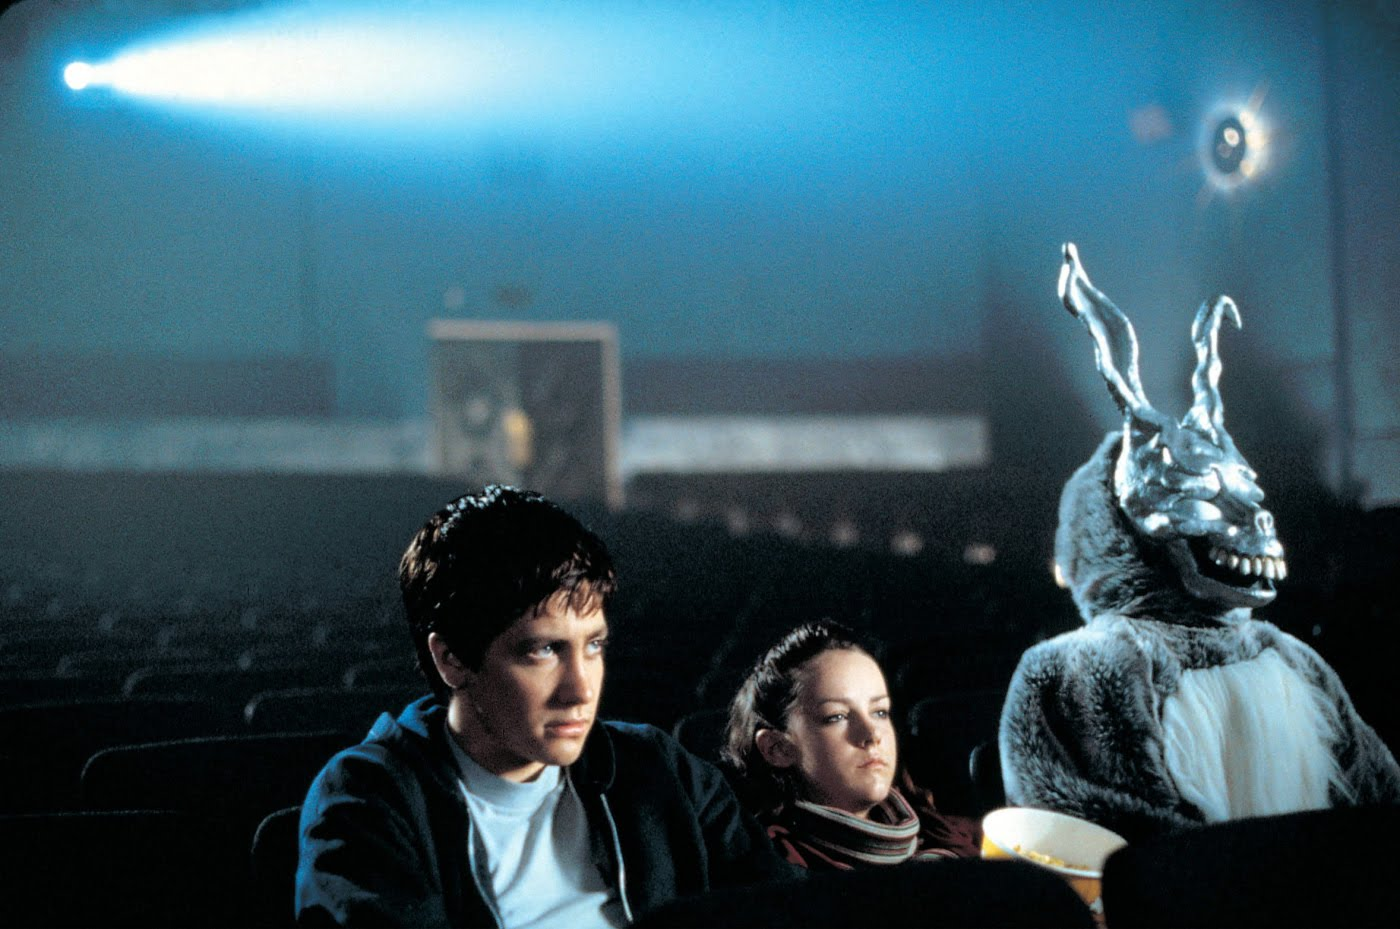 Donnie Darko and Frank the Bunny in the Theater